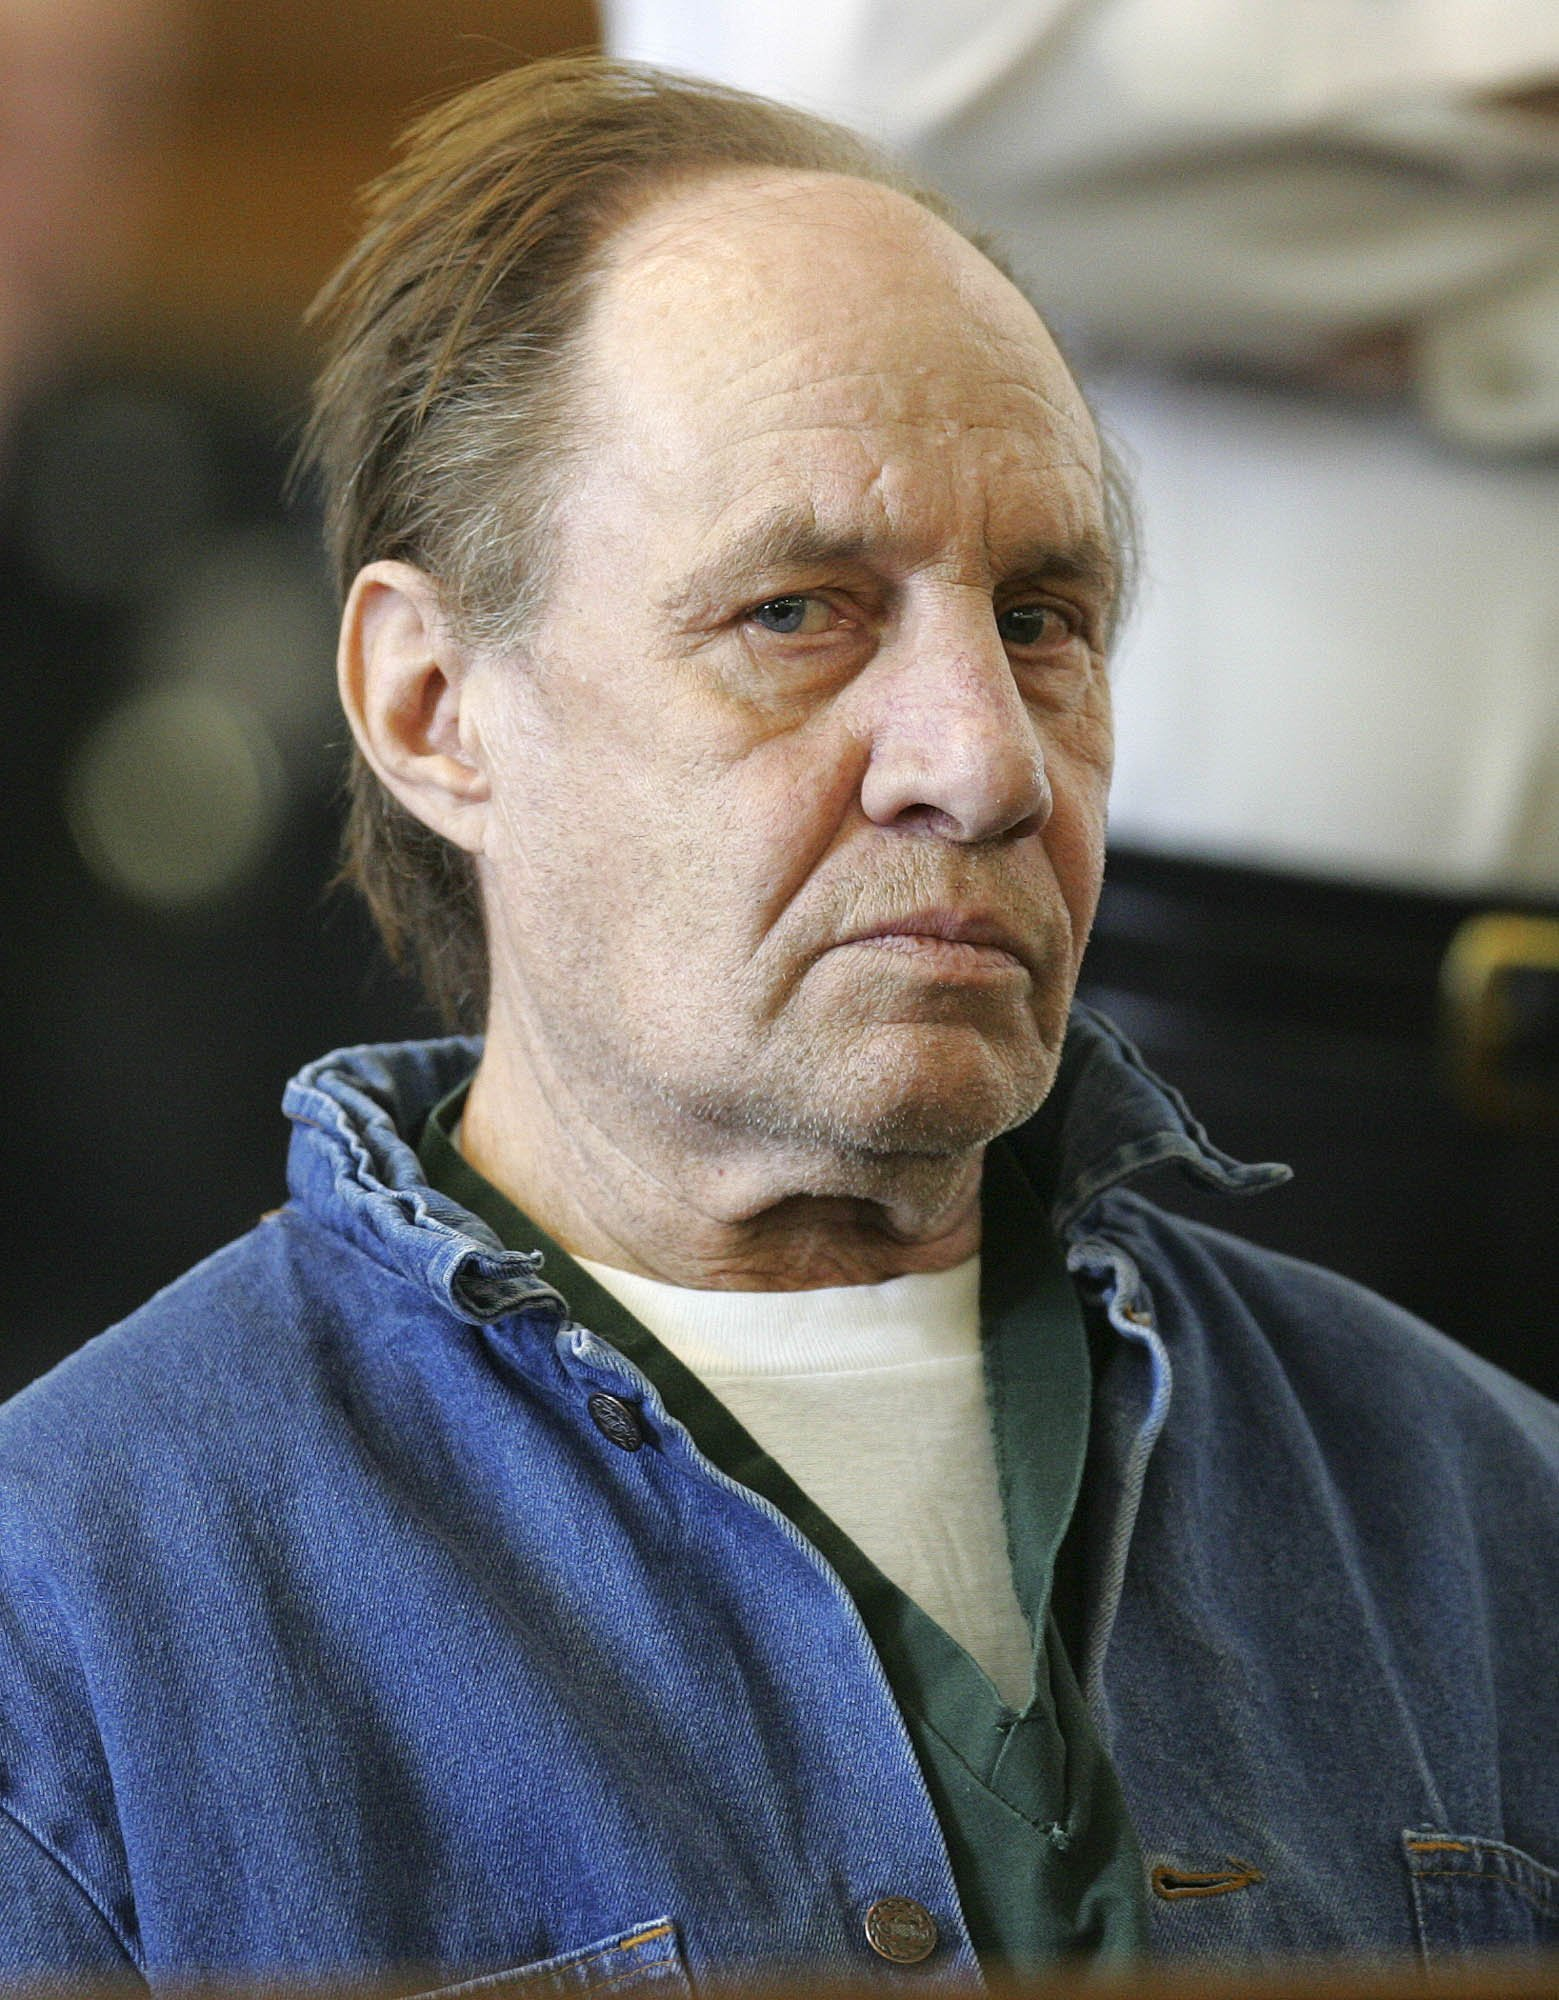 Massachusetts denies parole to murderer who hid in Chicago for 20 years